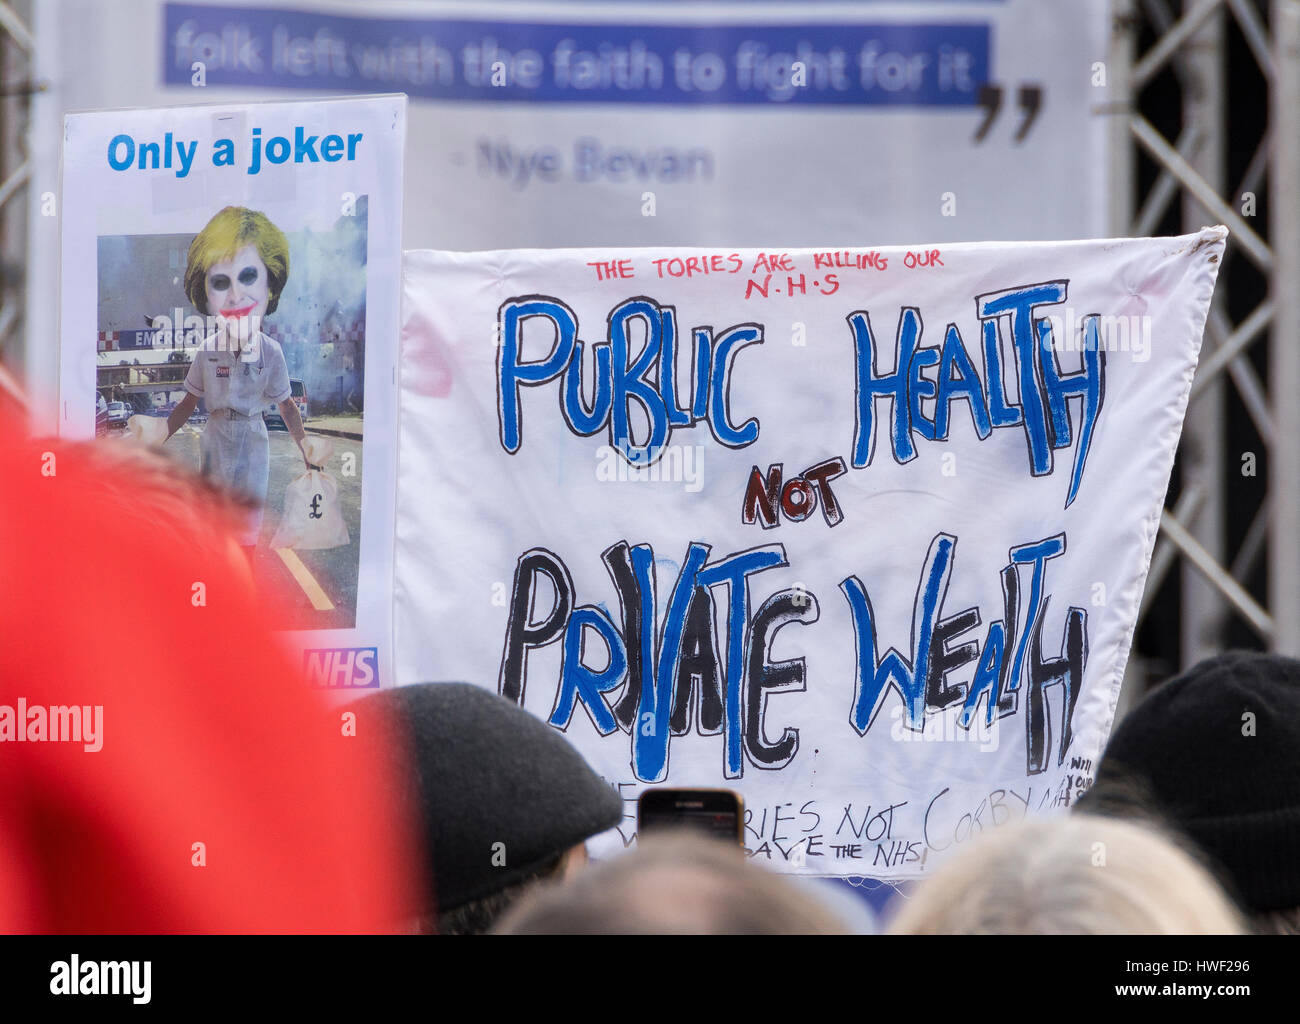 Thousands march in protest over plans for 'unprecedented' cuts to the NHS in London, England, UK.  4th March - Stock Image